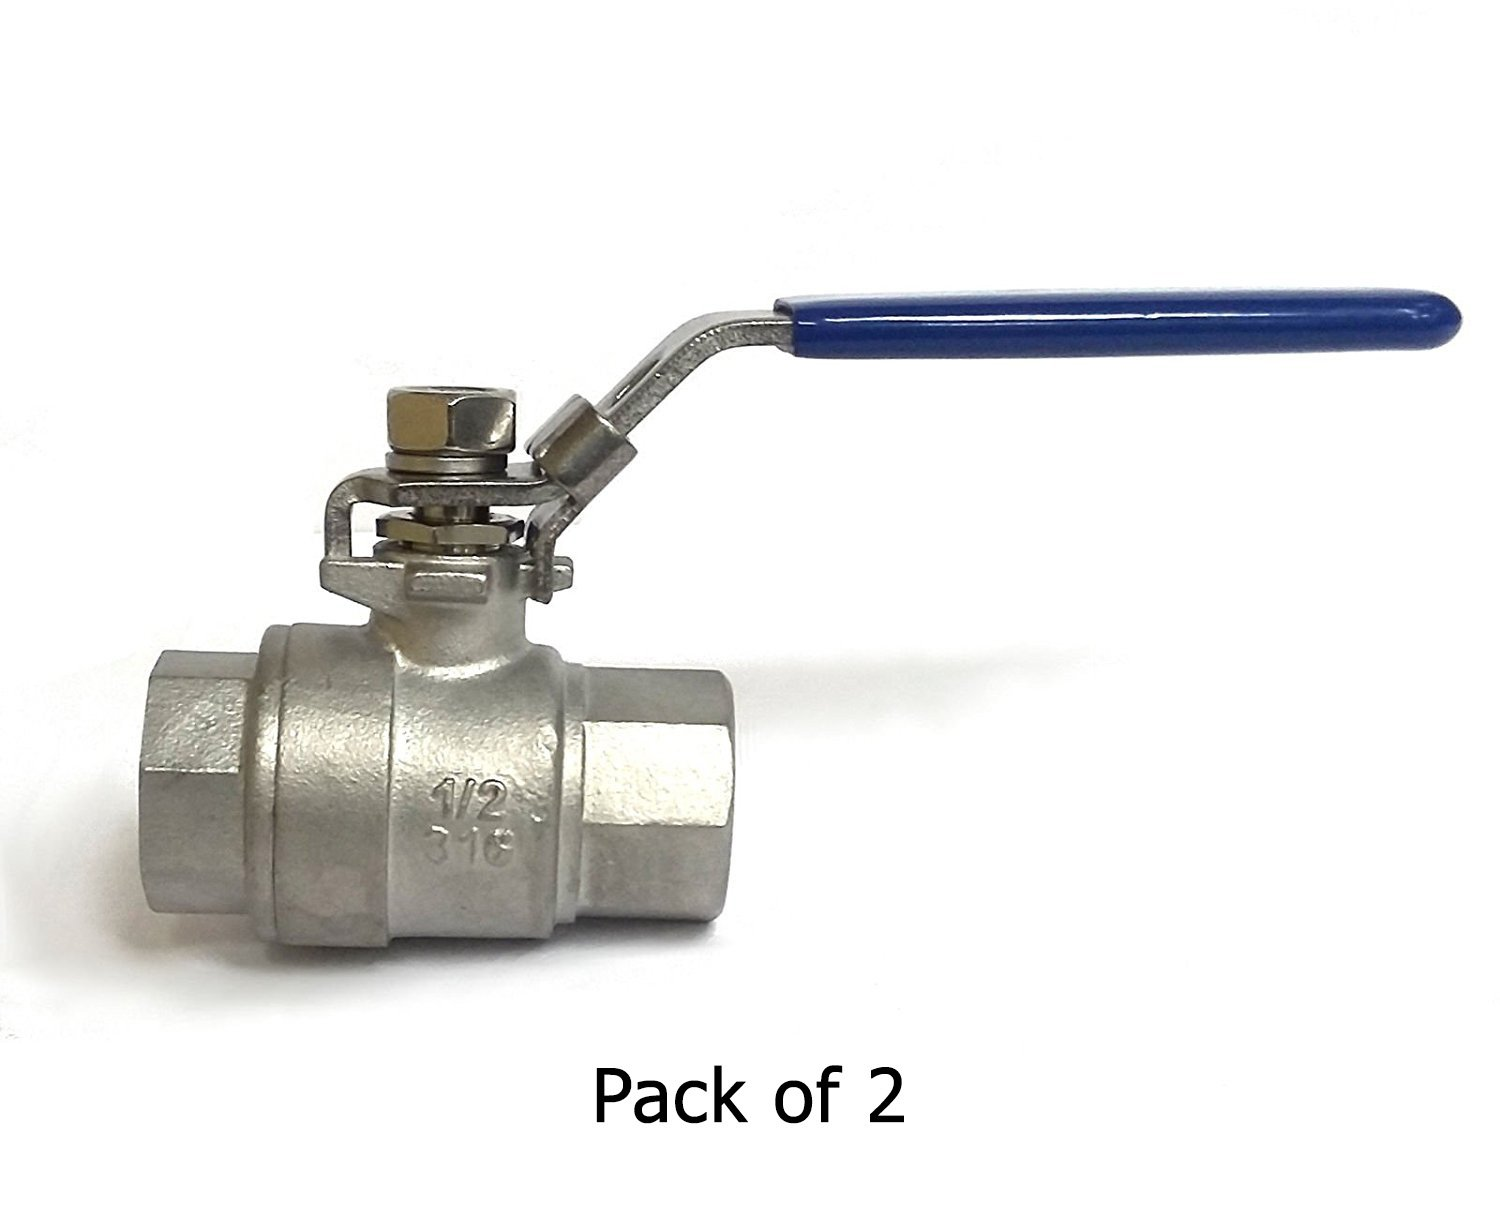 1/4 NPT, 2 Piece, 316 Stainless Steel, Full Port Ball Valve w/Blue Vinyl Handle, WOG 1000, Pack of 2 (.25'')